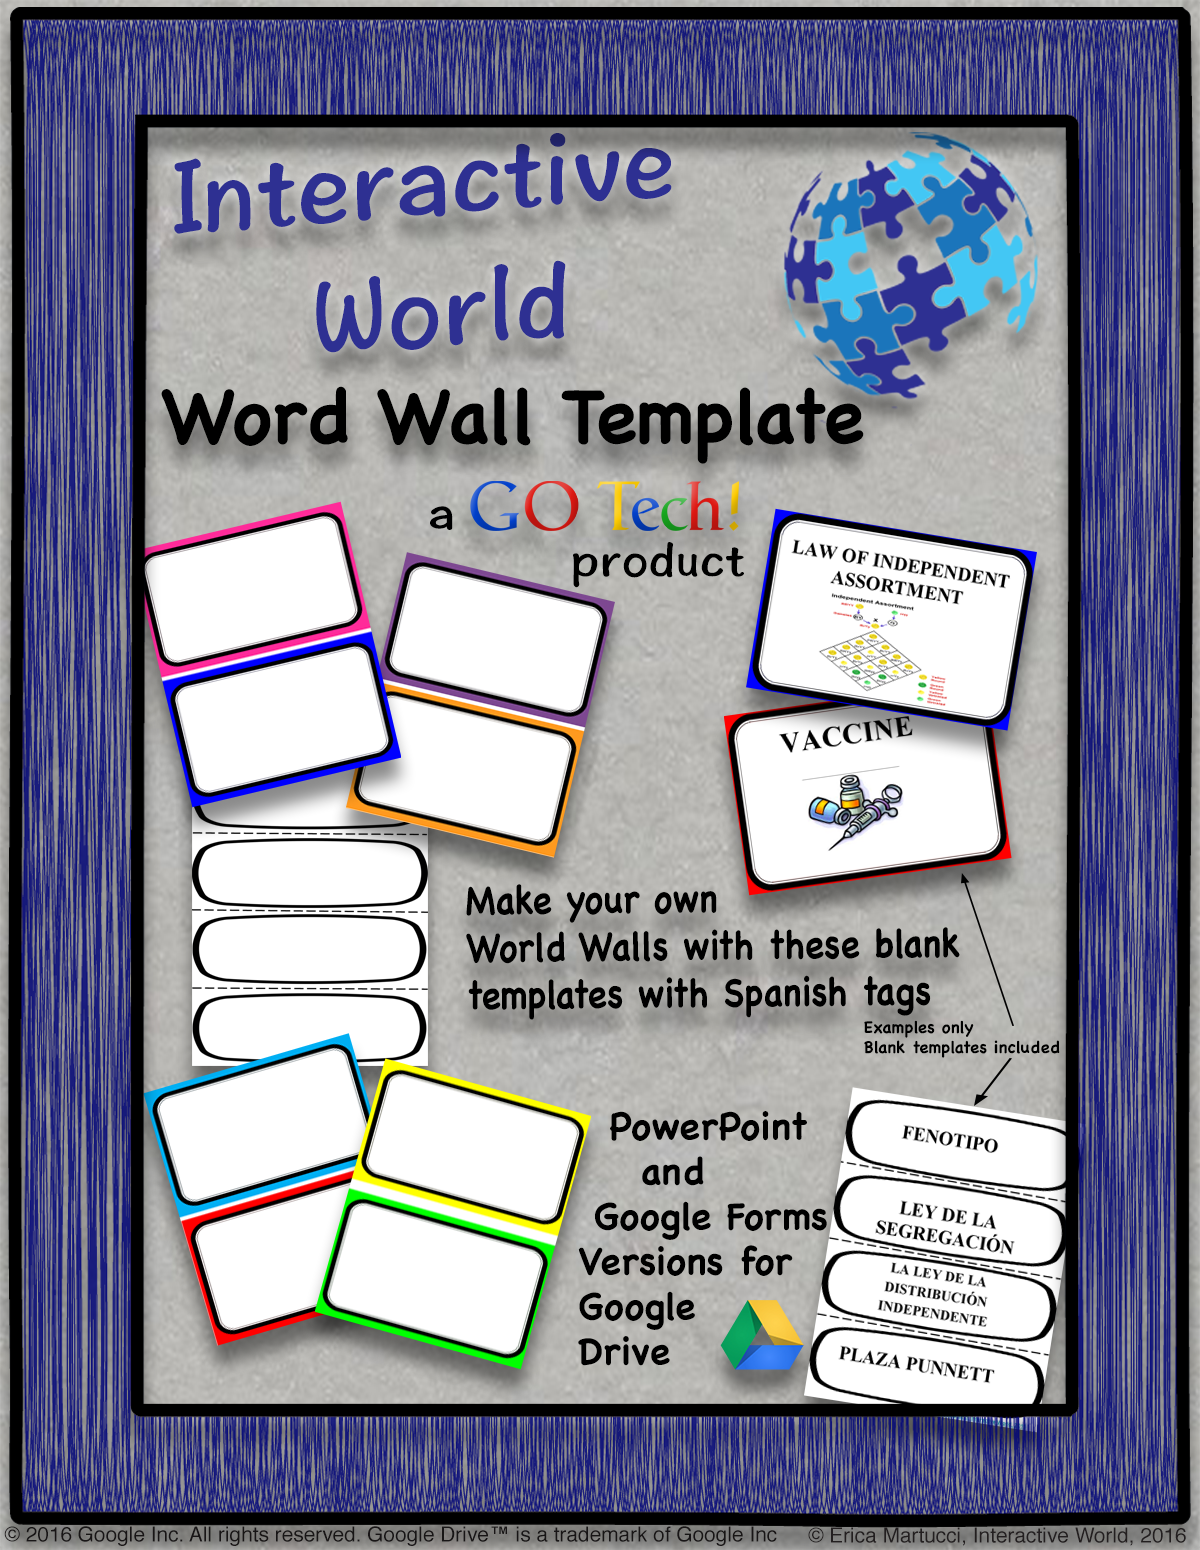 Word Walls Are A Great Way To Keep The Students Aware Of Important Concepts Being Presented In The Classroom On Word Wall Template Word Wall Personal Word Wall